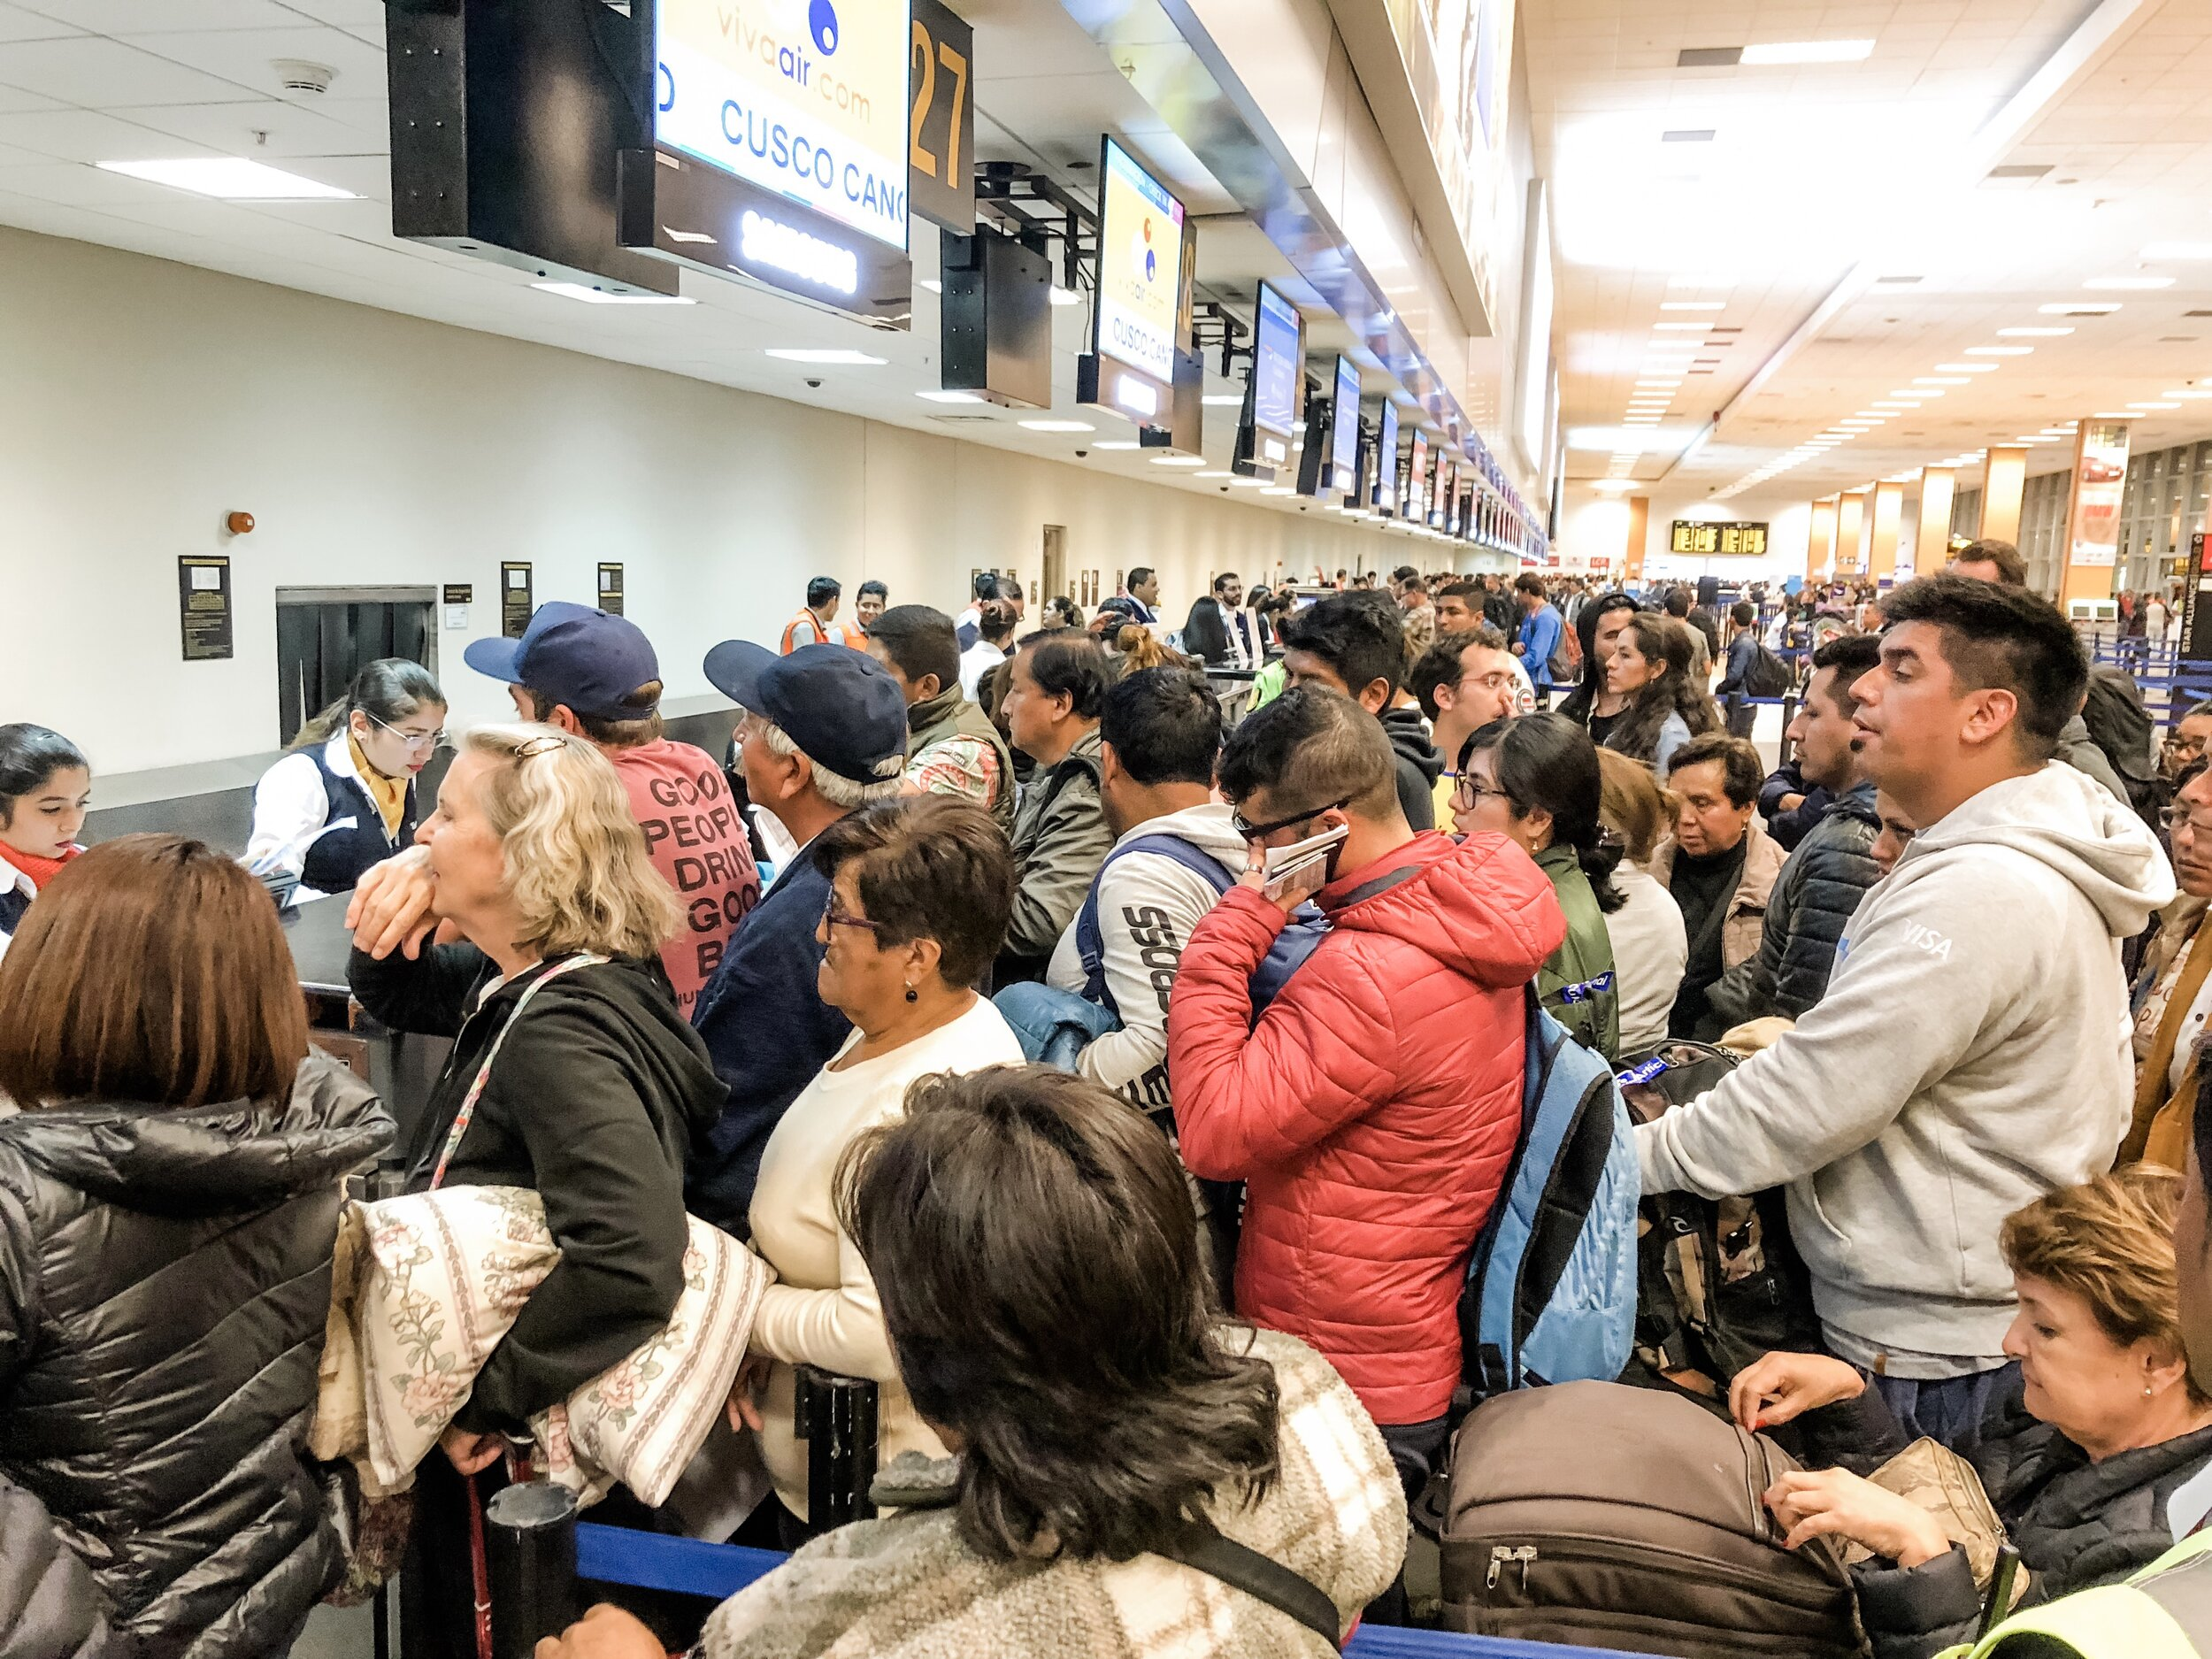 Lima Airport: Picture a bum rush of people to the front, people yelling in Spanish at the top of their lungs, and two workers left alone trying to help a plane full of stranded travelers.